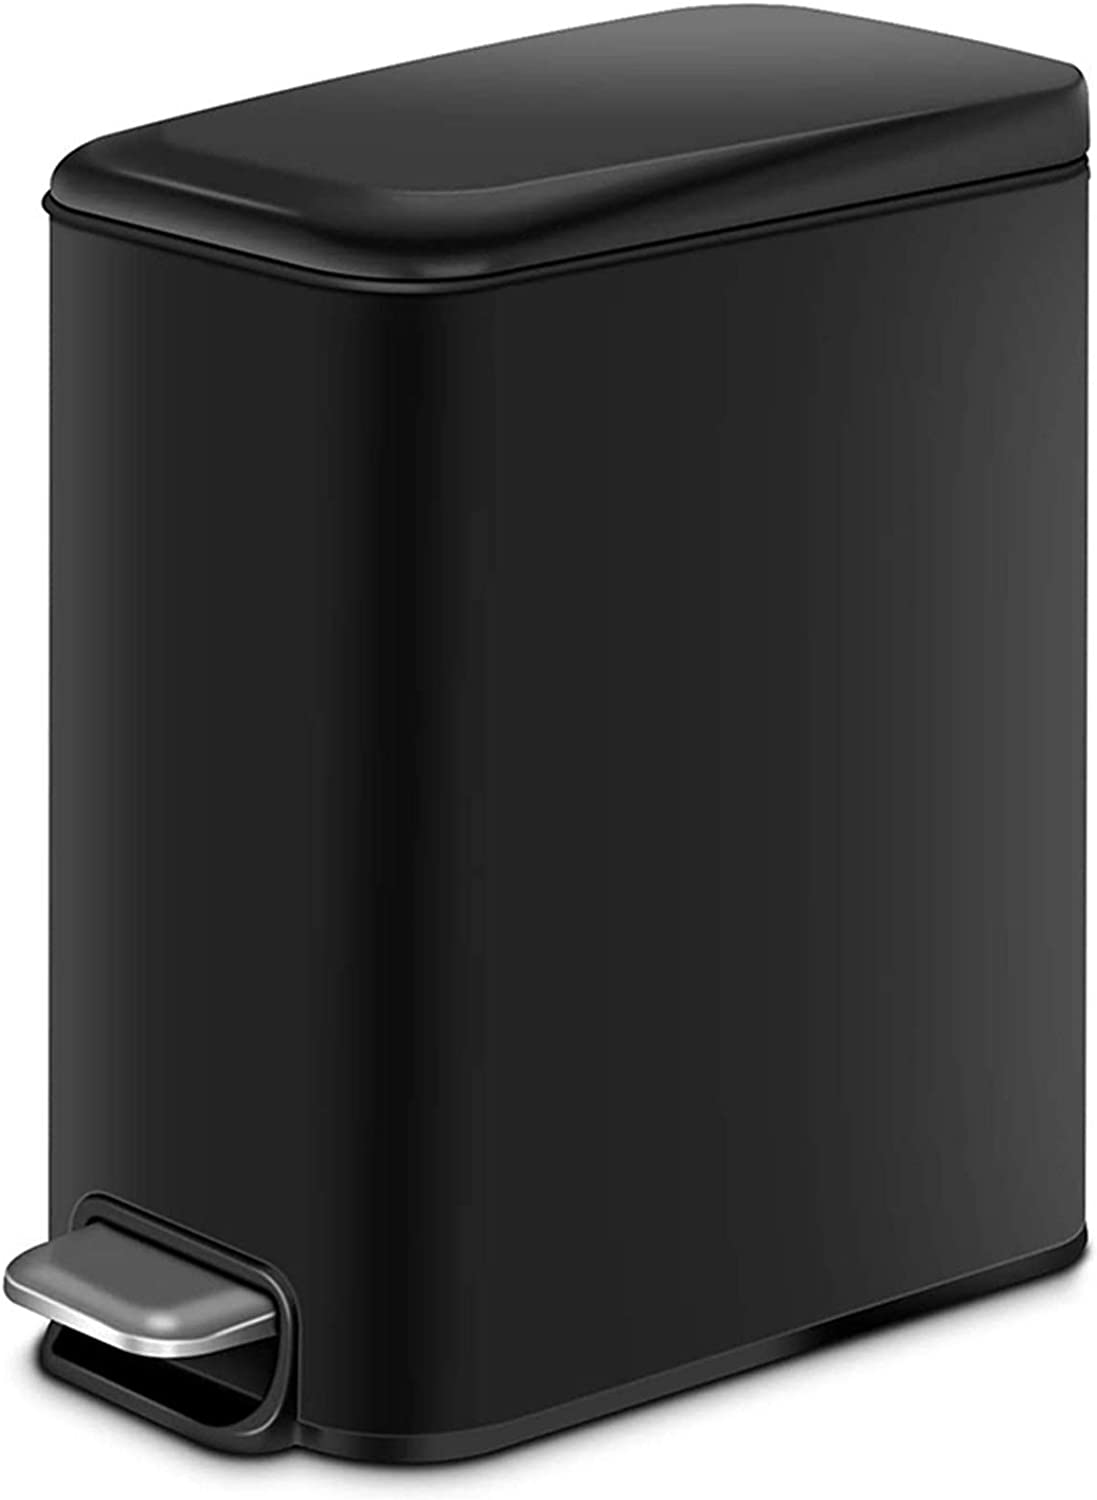 YYDMBH Small Max 42% OFF Trash Inexpensive Can Lid with Rectangular